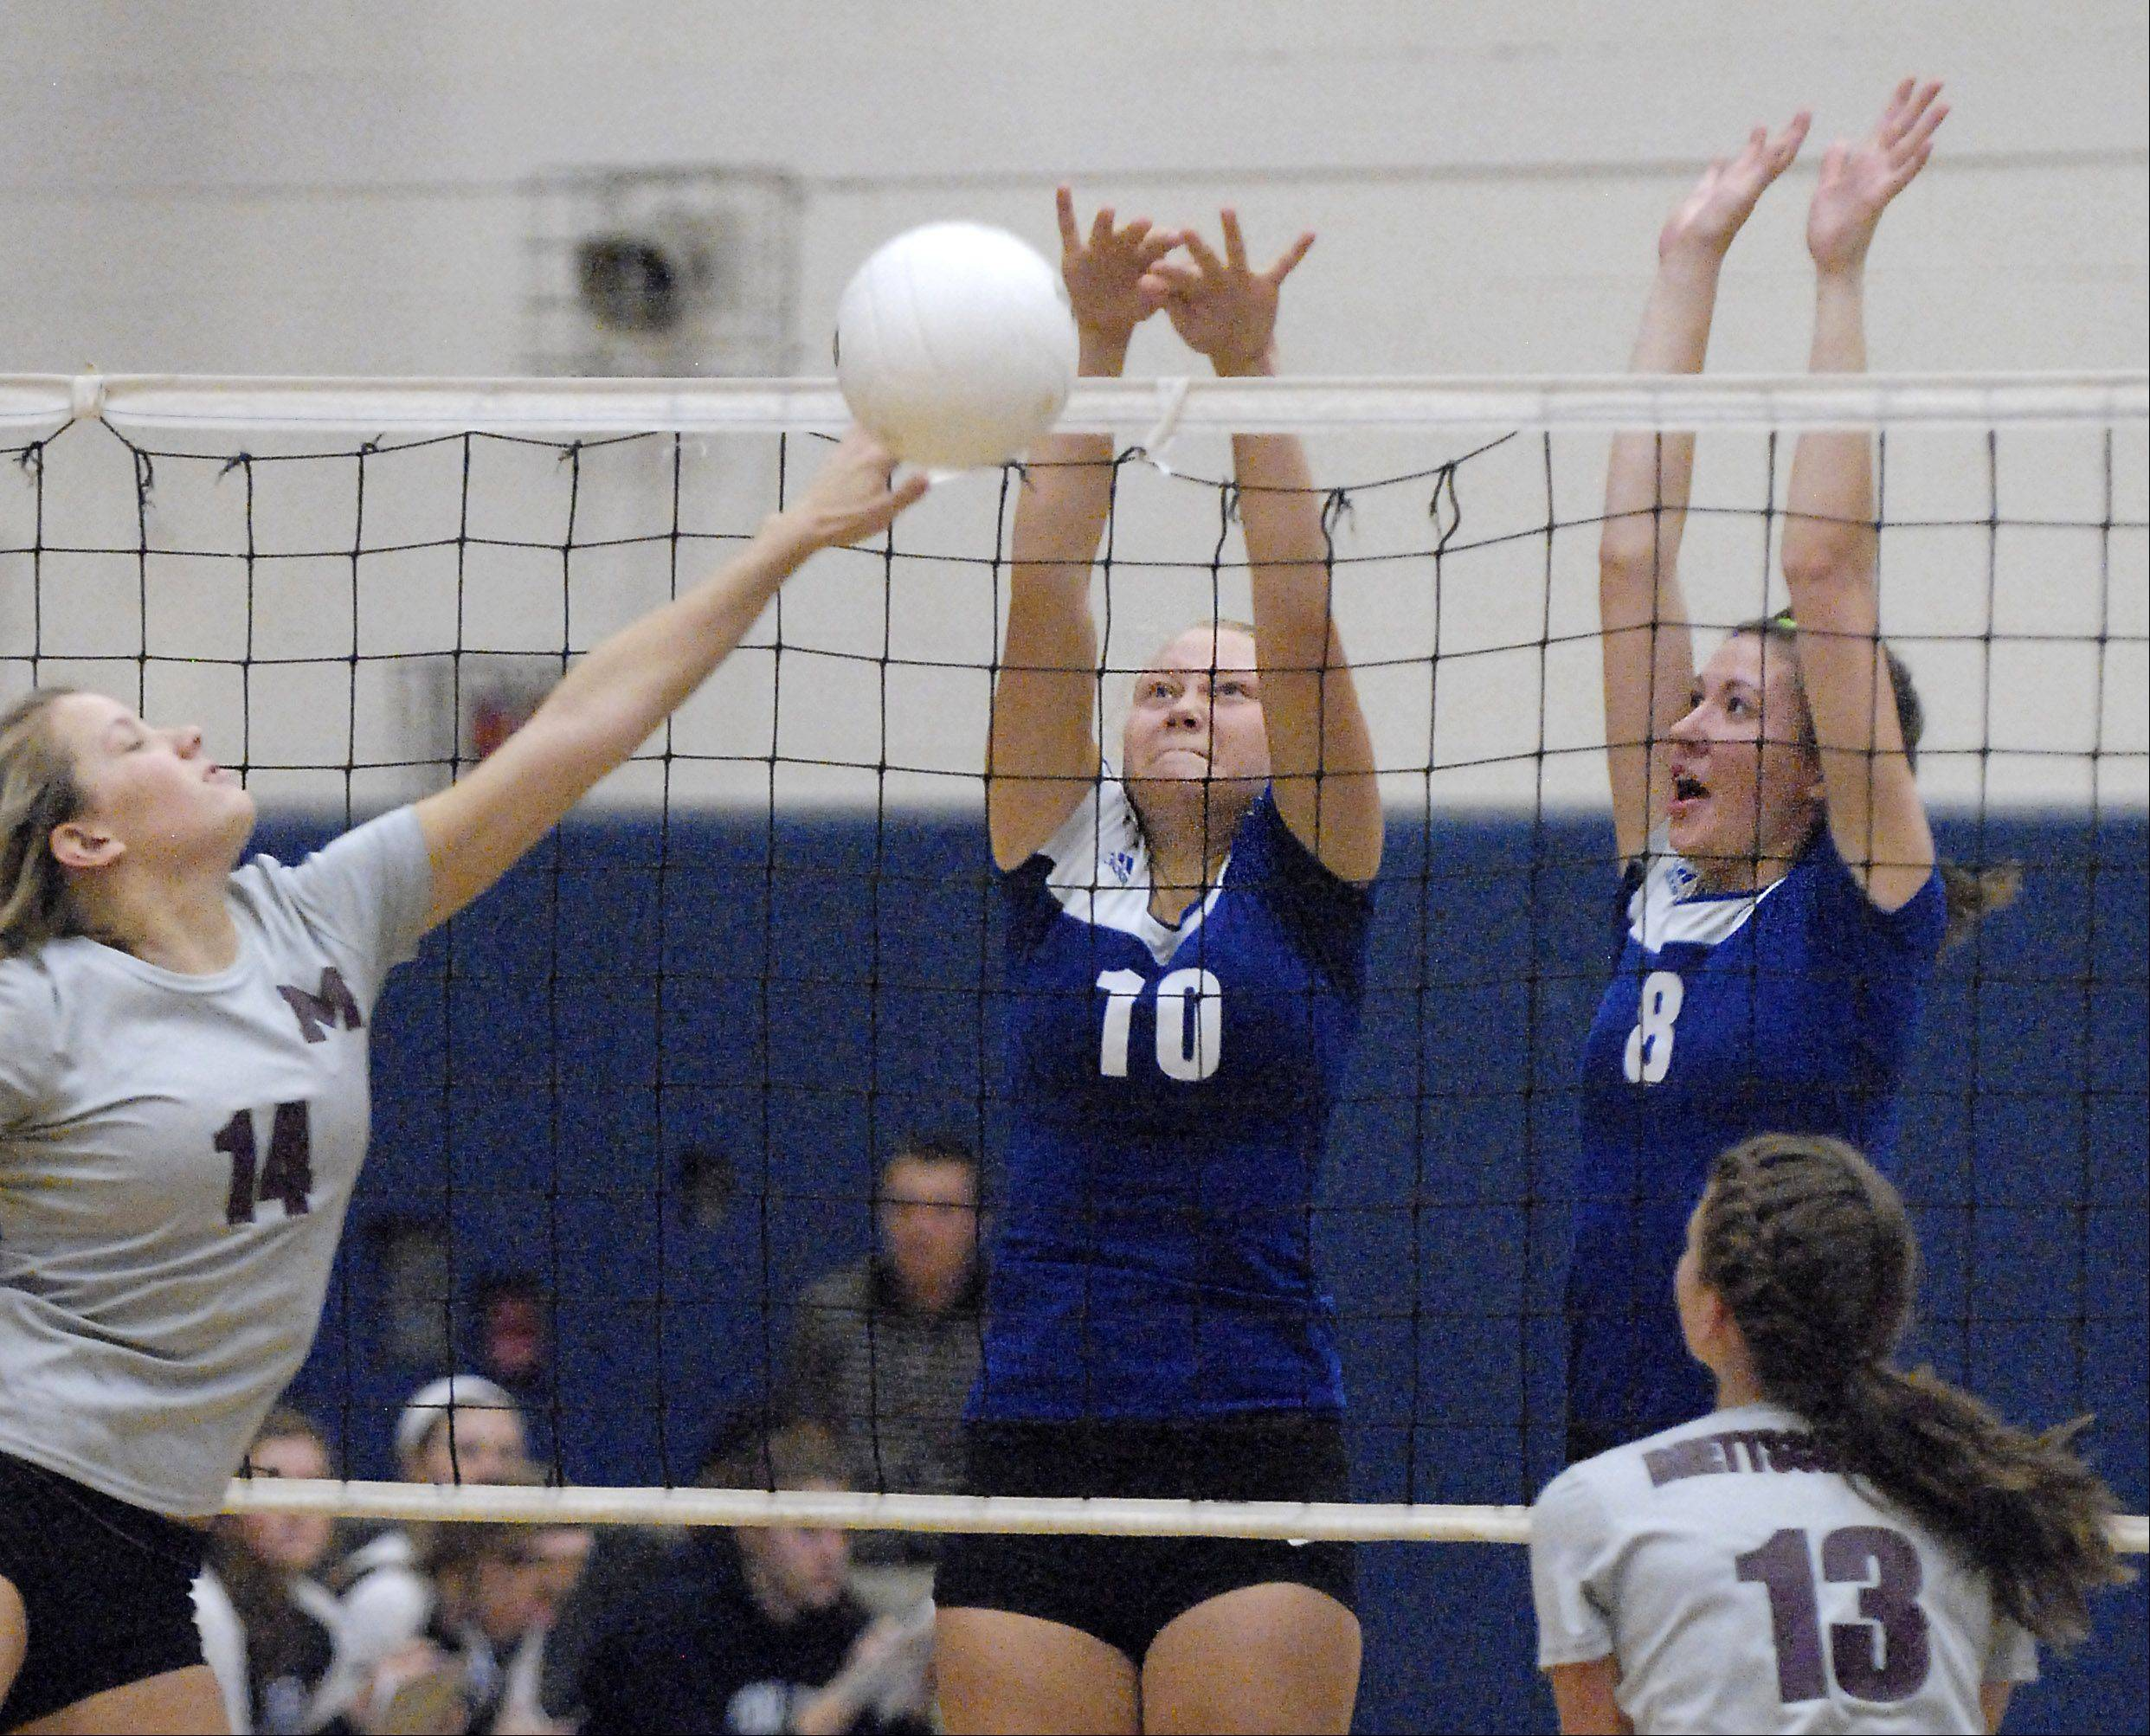 Burlington Central's Jess Emrich and Lauren Peltonen immediately deflect a shot to sending Marengo's Peyton Velasquez to scramble in the second set on Wednesday.